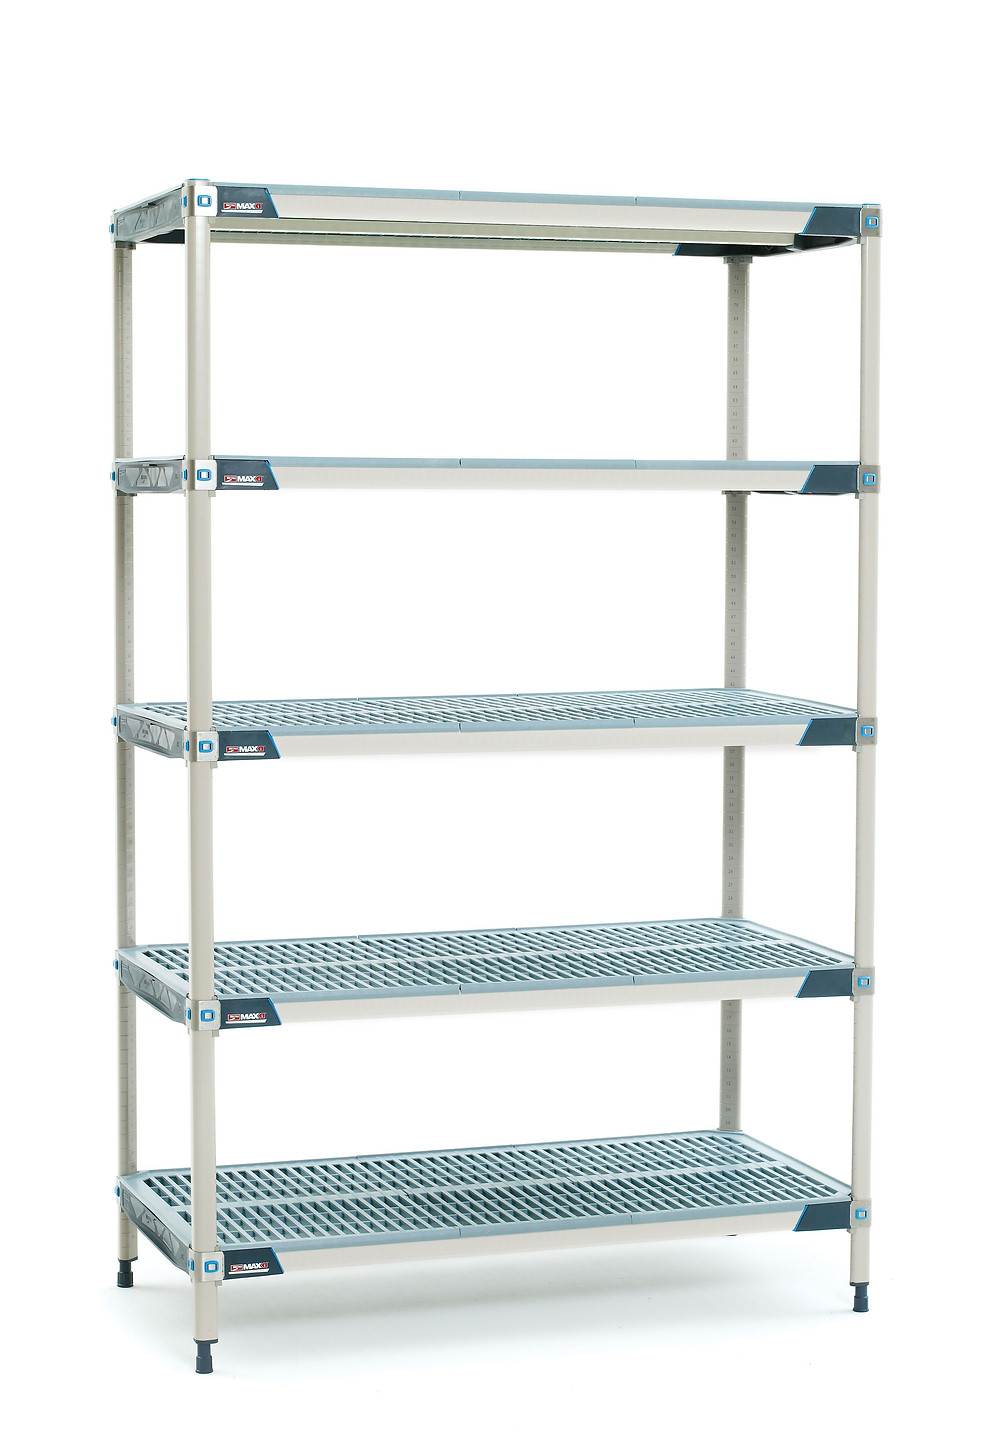 Metro Max Stationary Shelf